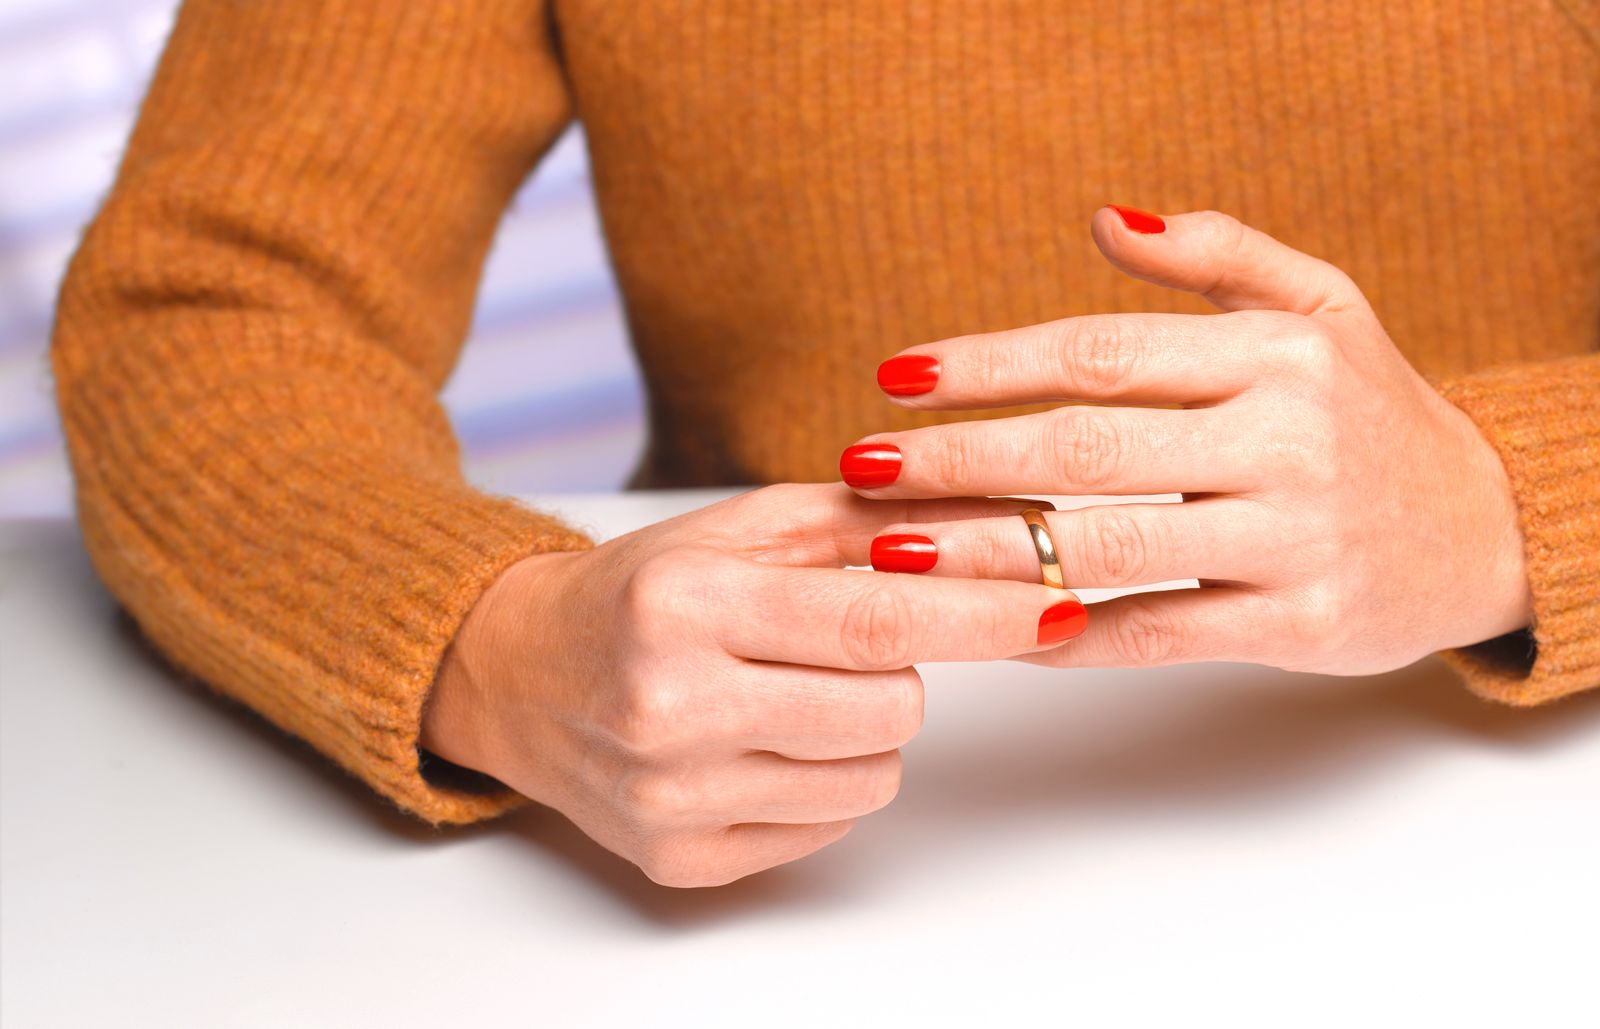 Divorced woman taking off wedding ring